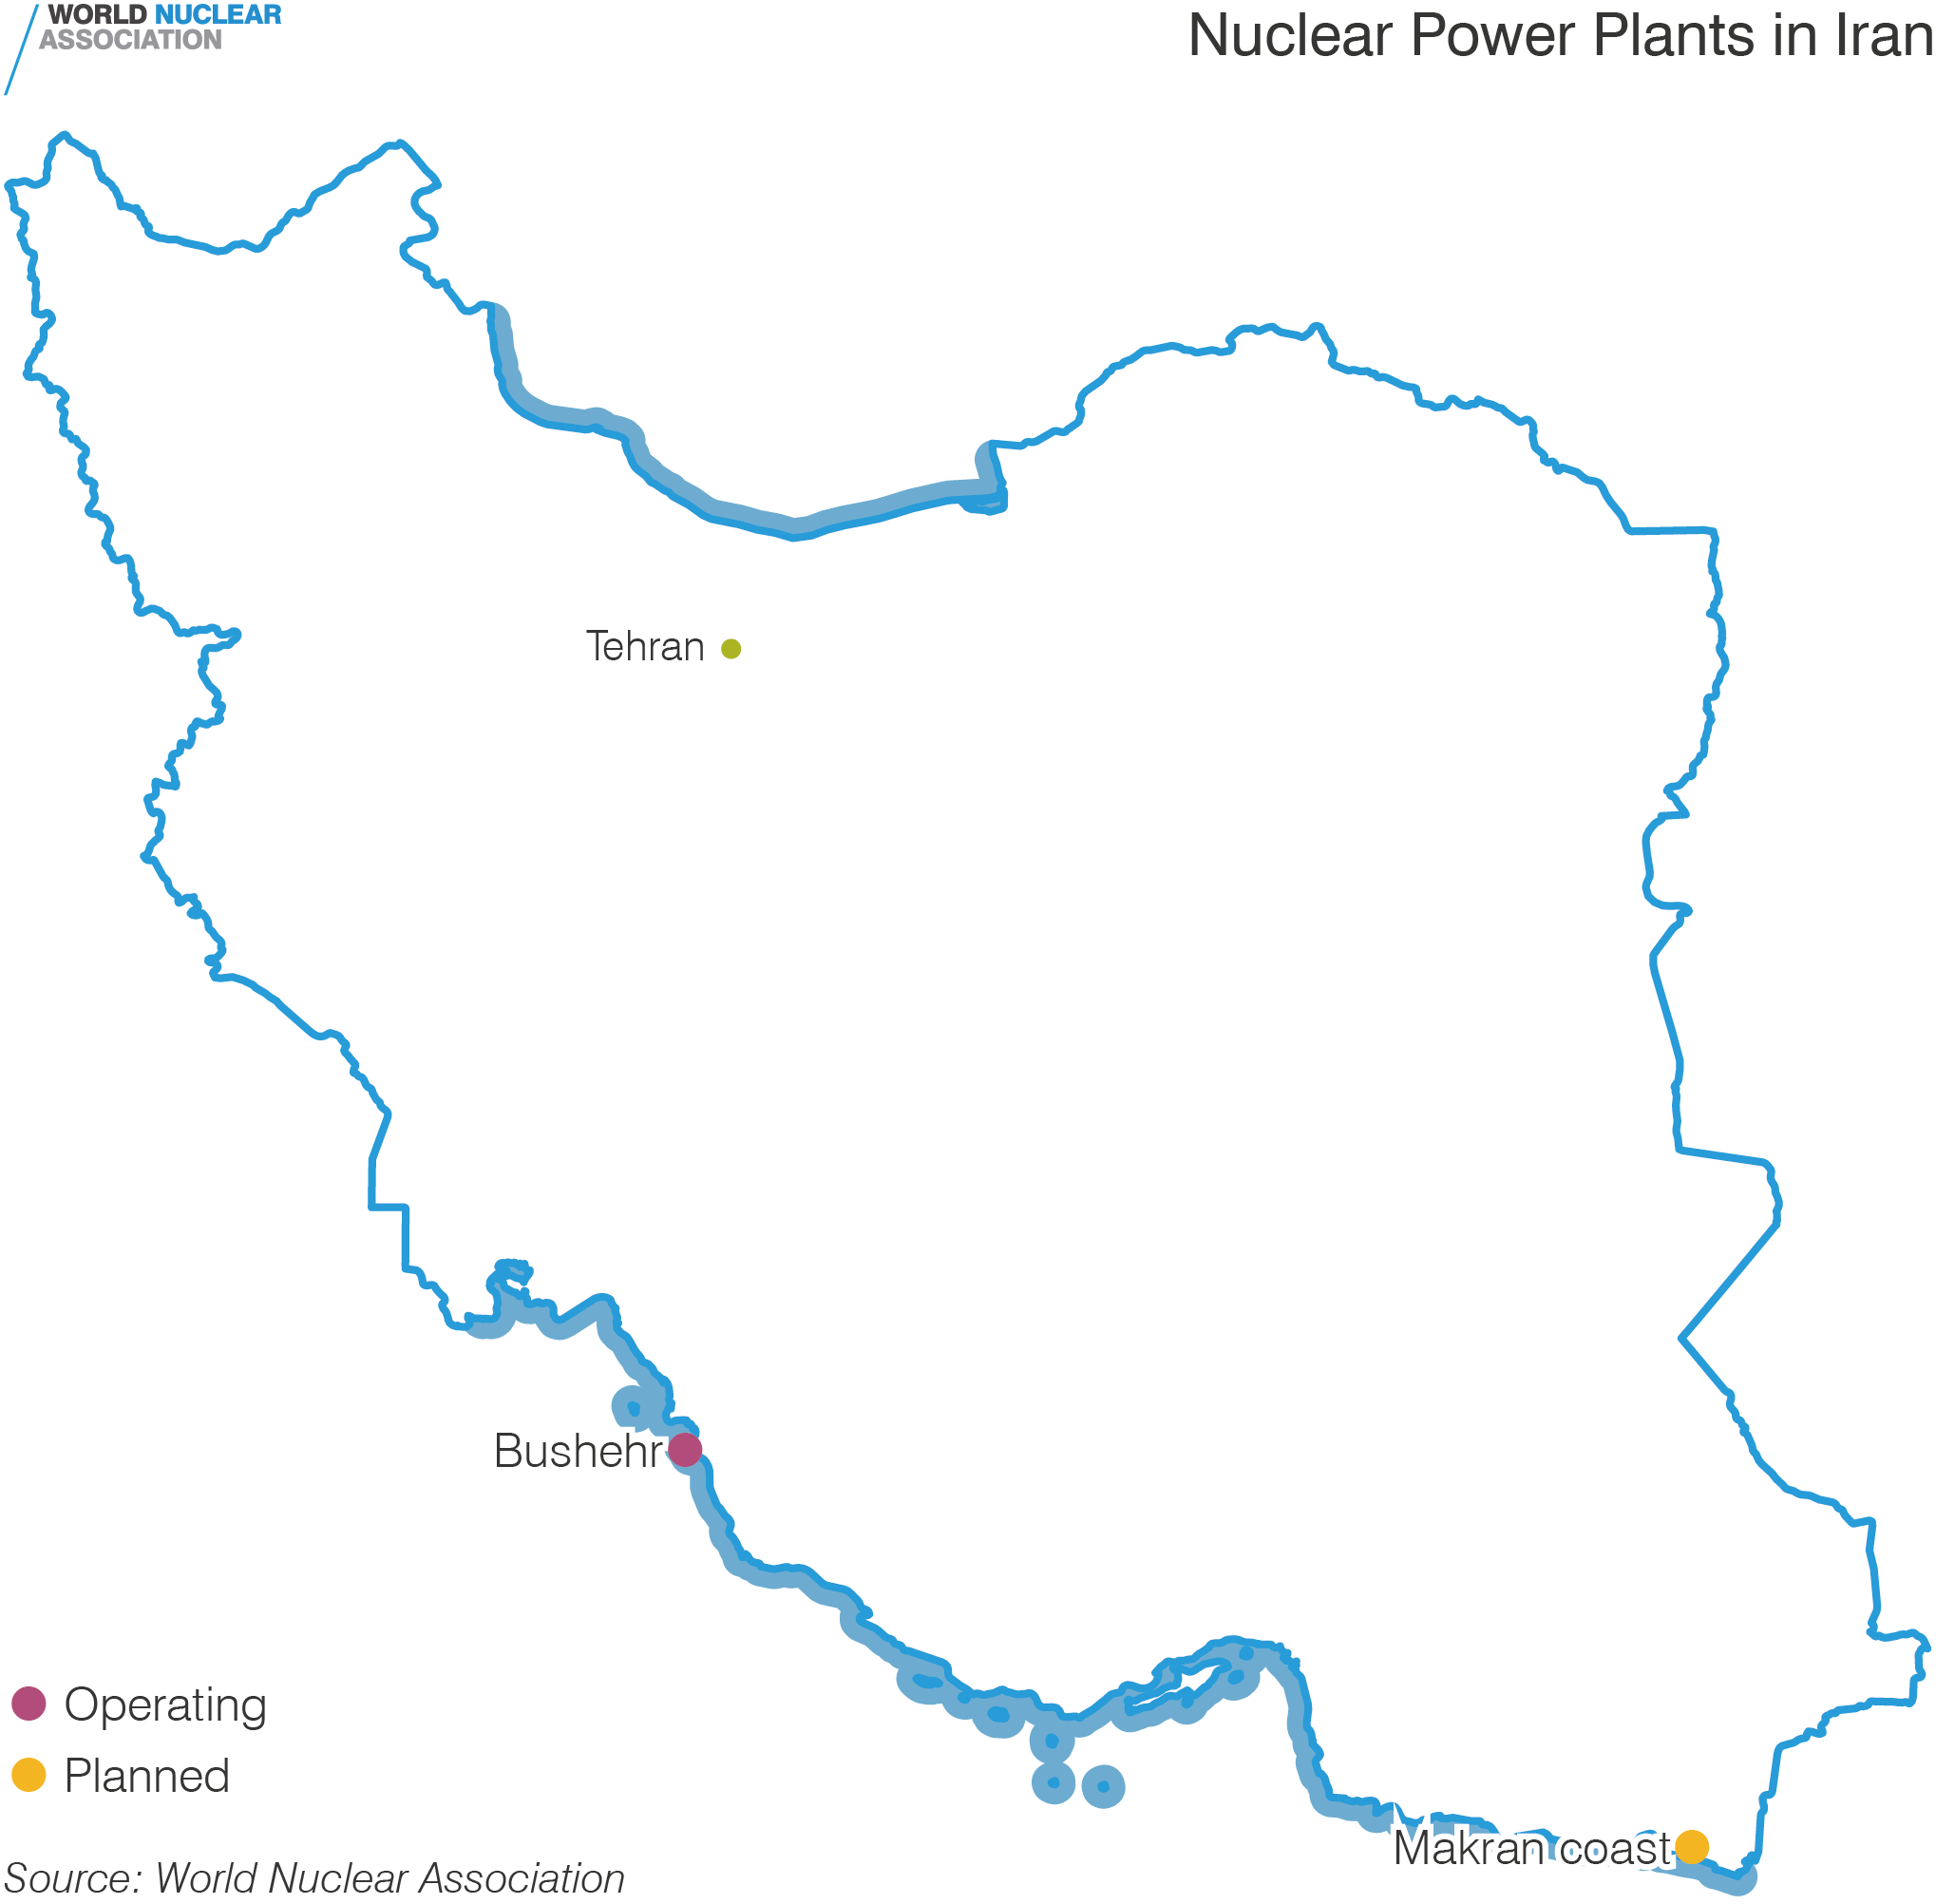 Nuclear Power Plants in Iran